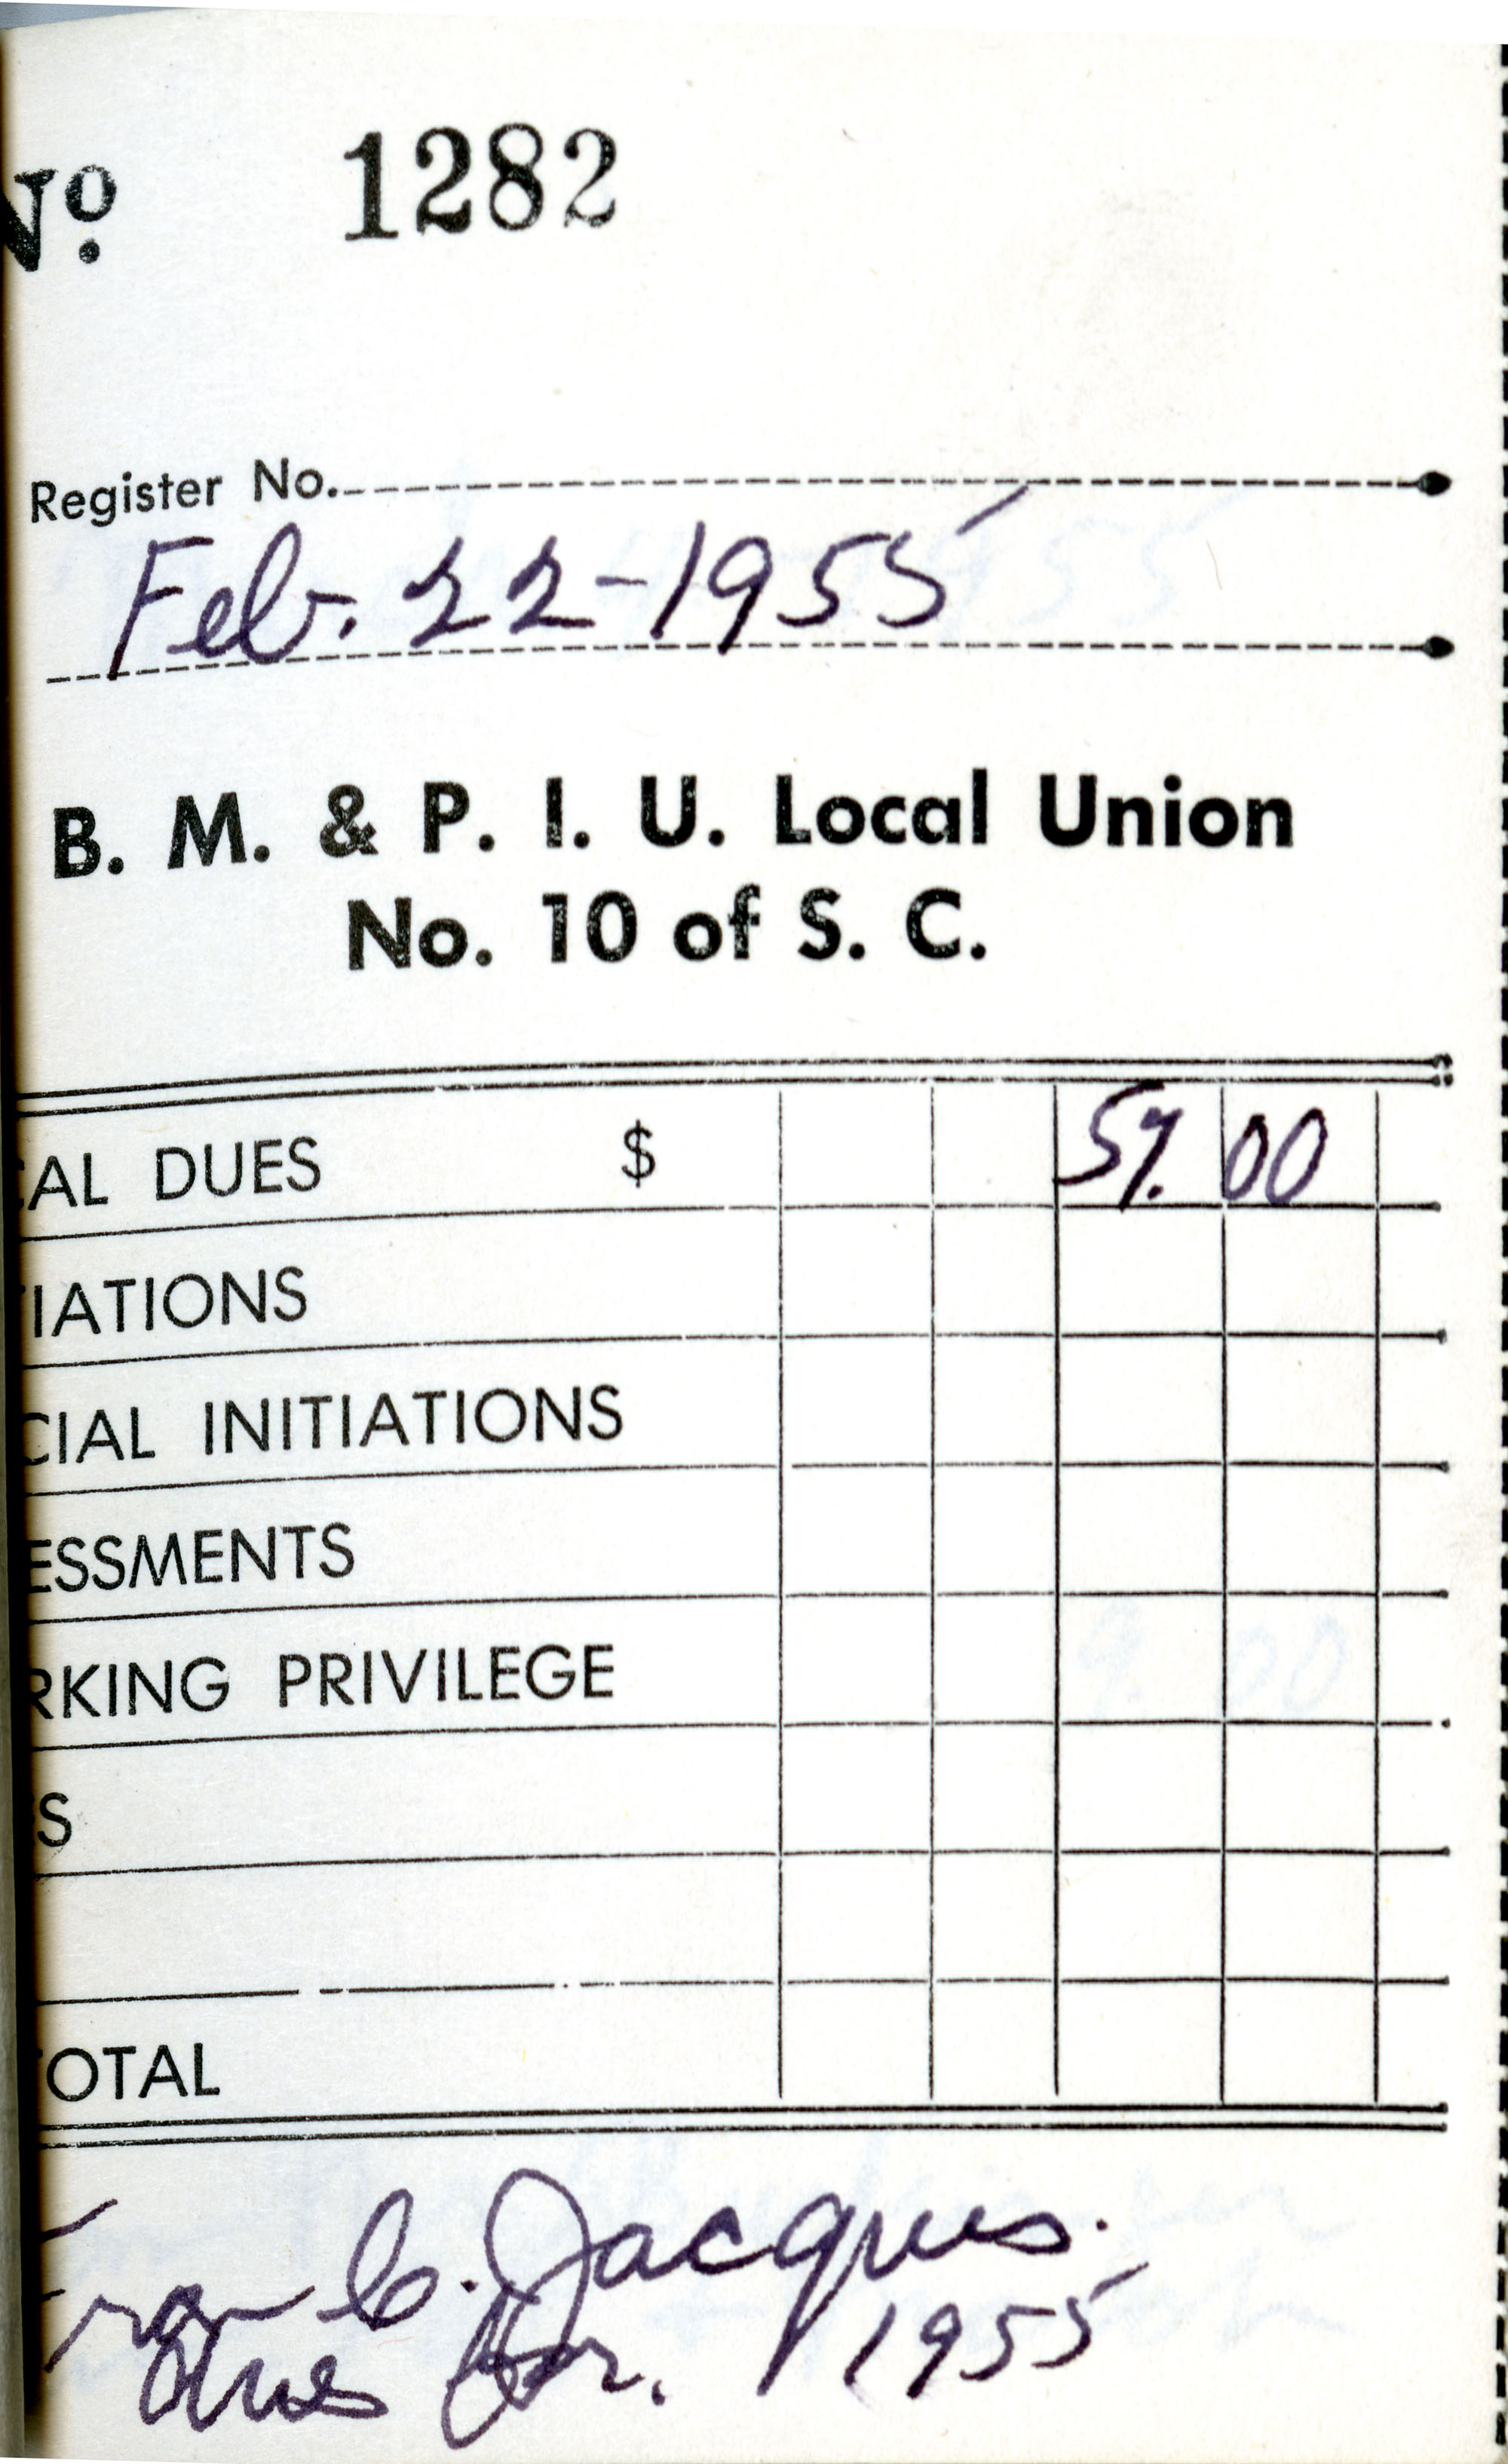 Receipt Book 4, Page 16